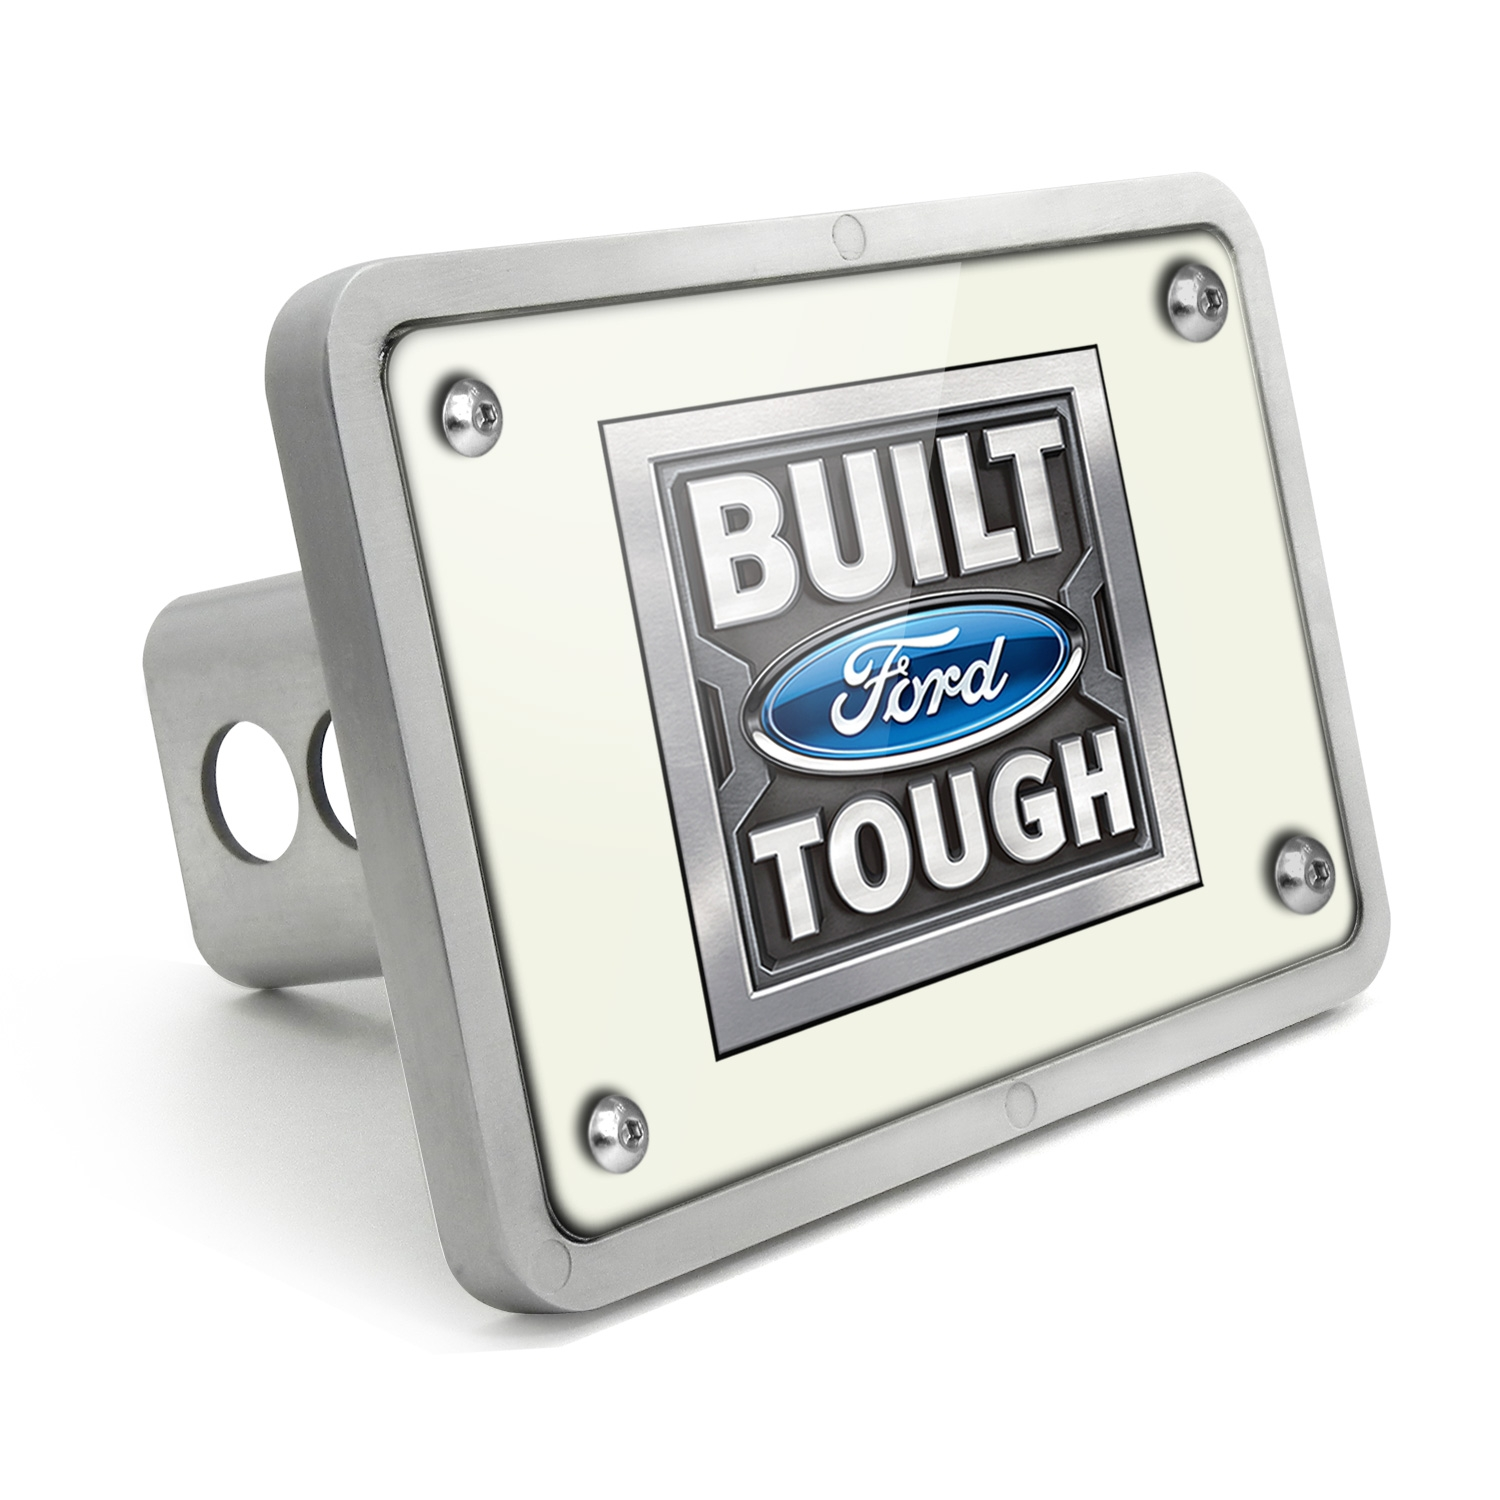 Ford Built Ford Tough UV Graphic White Plate Billet Aluminum 2 inch Tow Hitch Cover